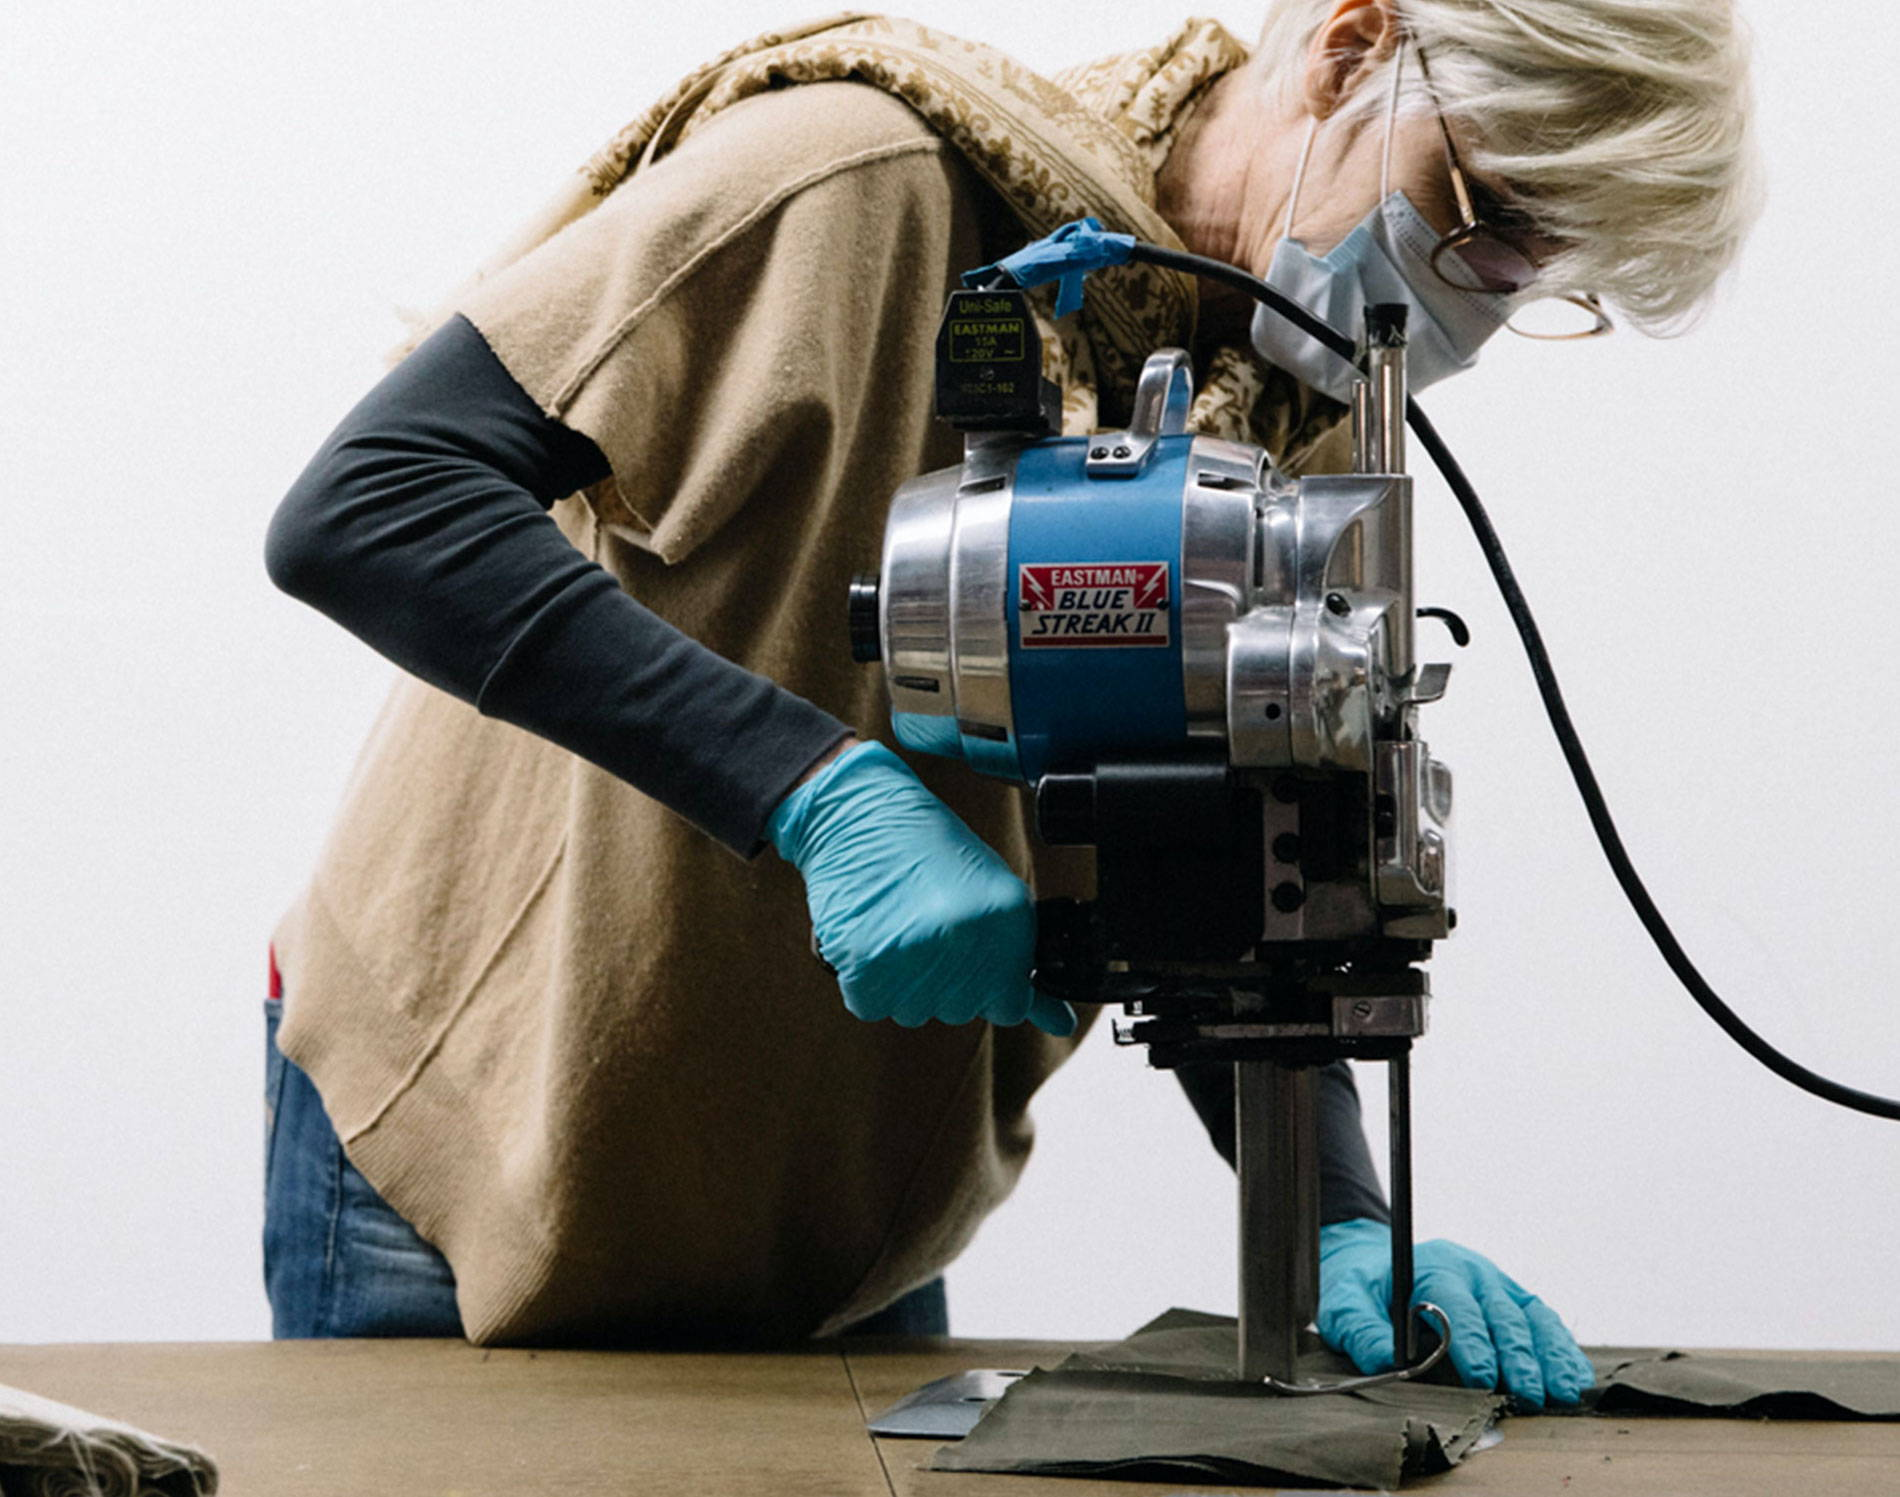 Image of Deborah Keiser (Timbuk2's President), cutting some material in a white room.